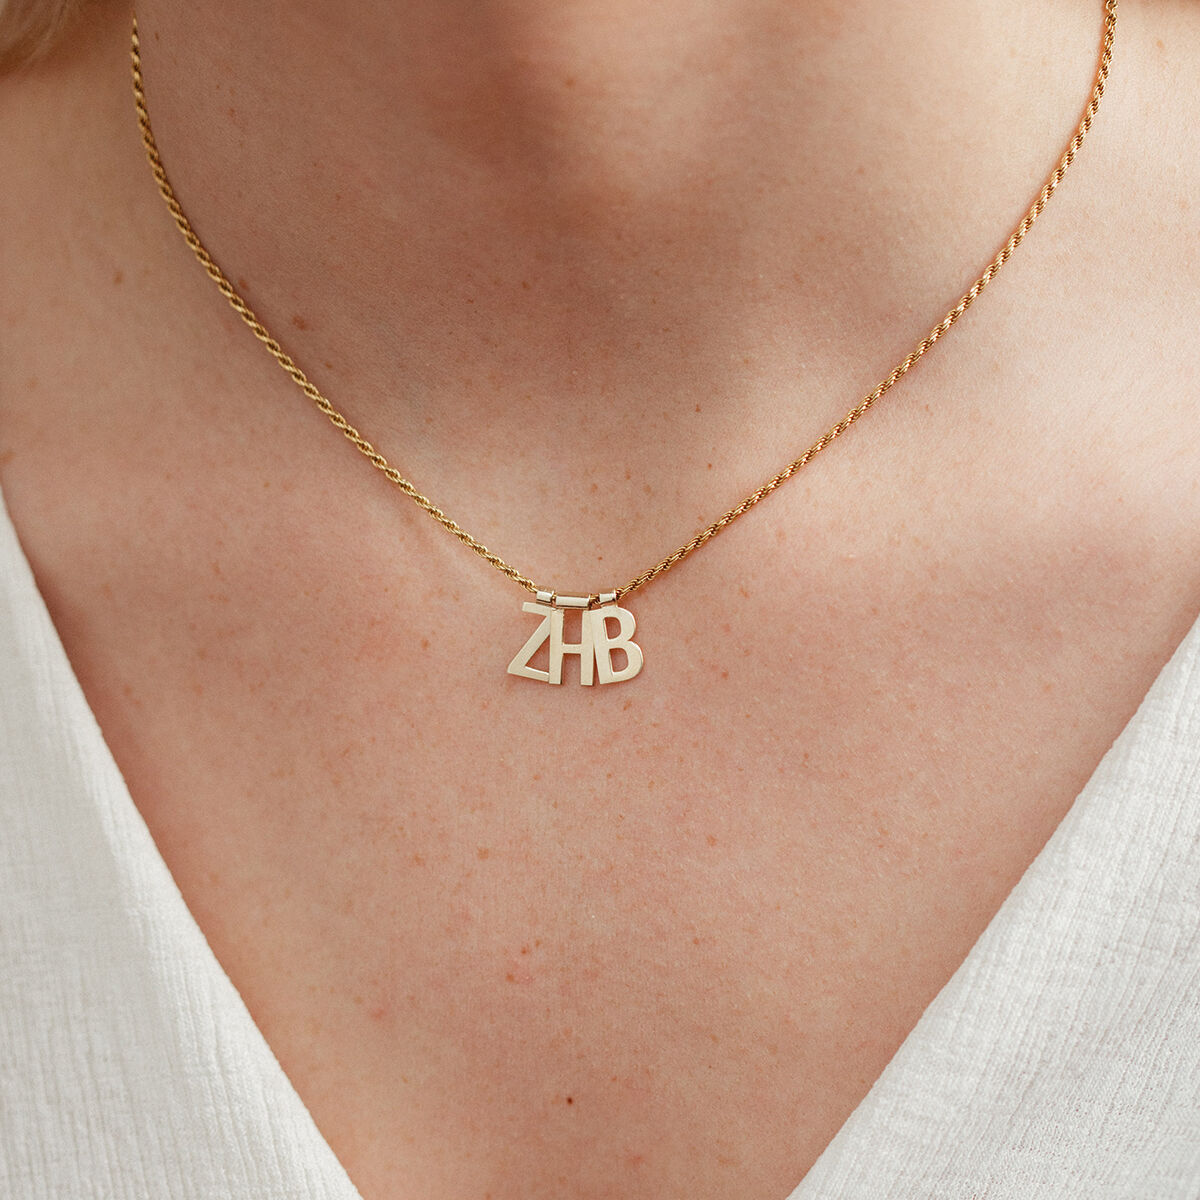 Ruby Rope Letter Necklace goud ZHB model